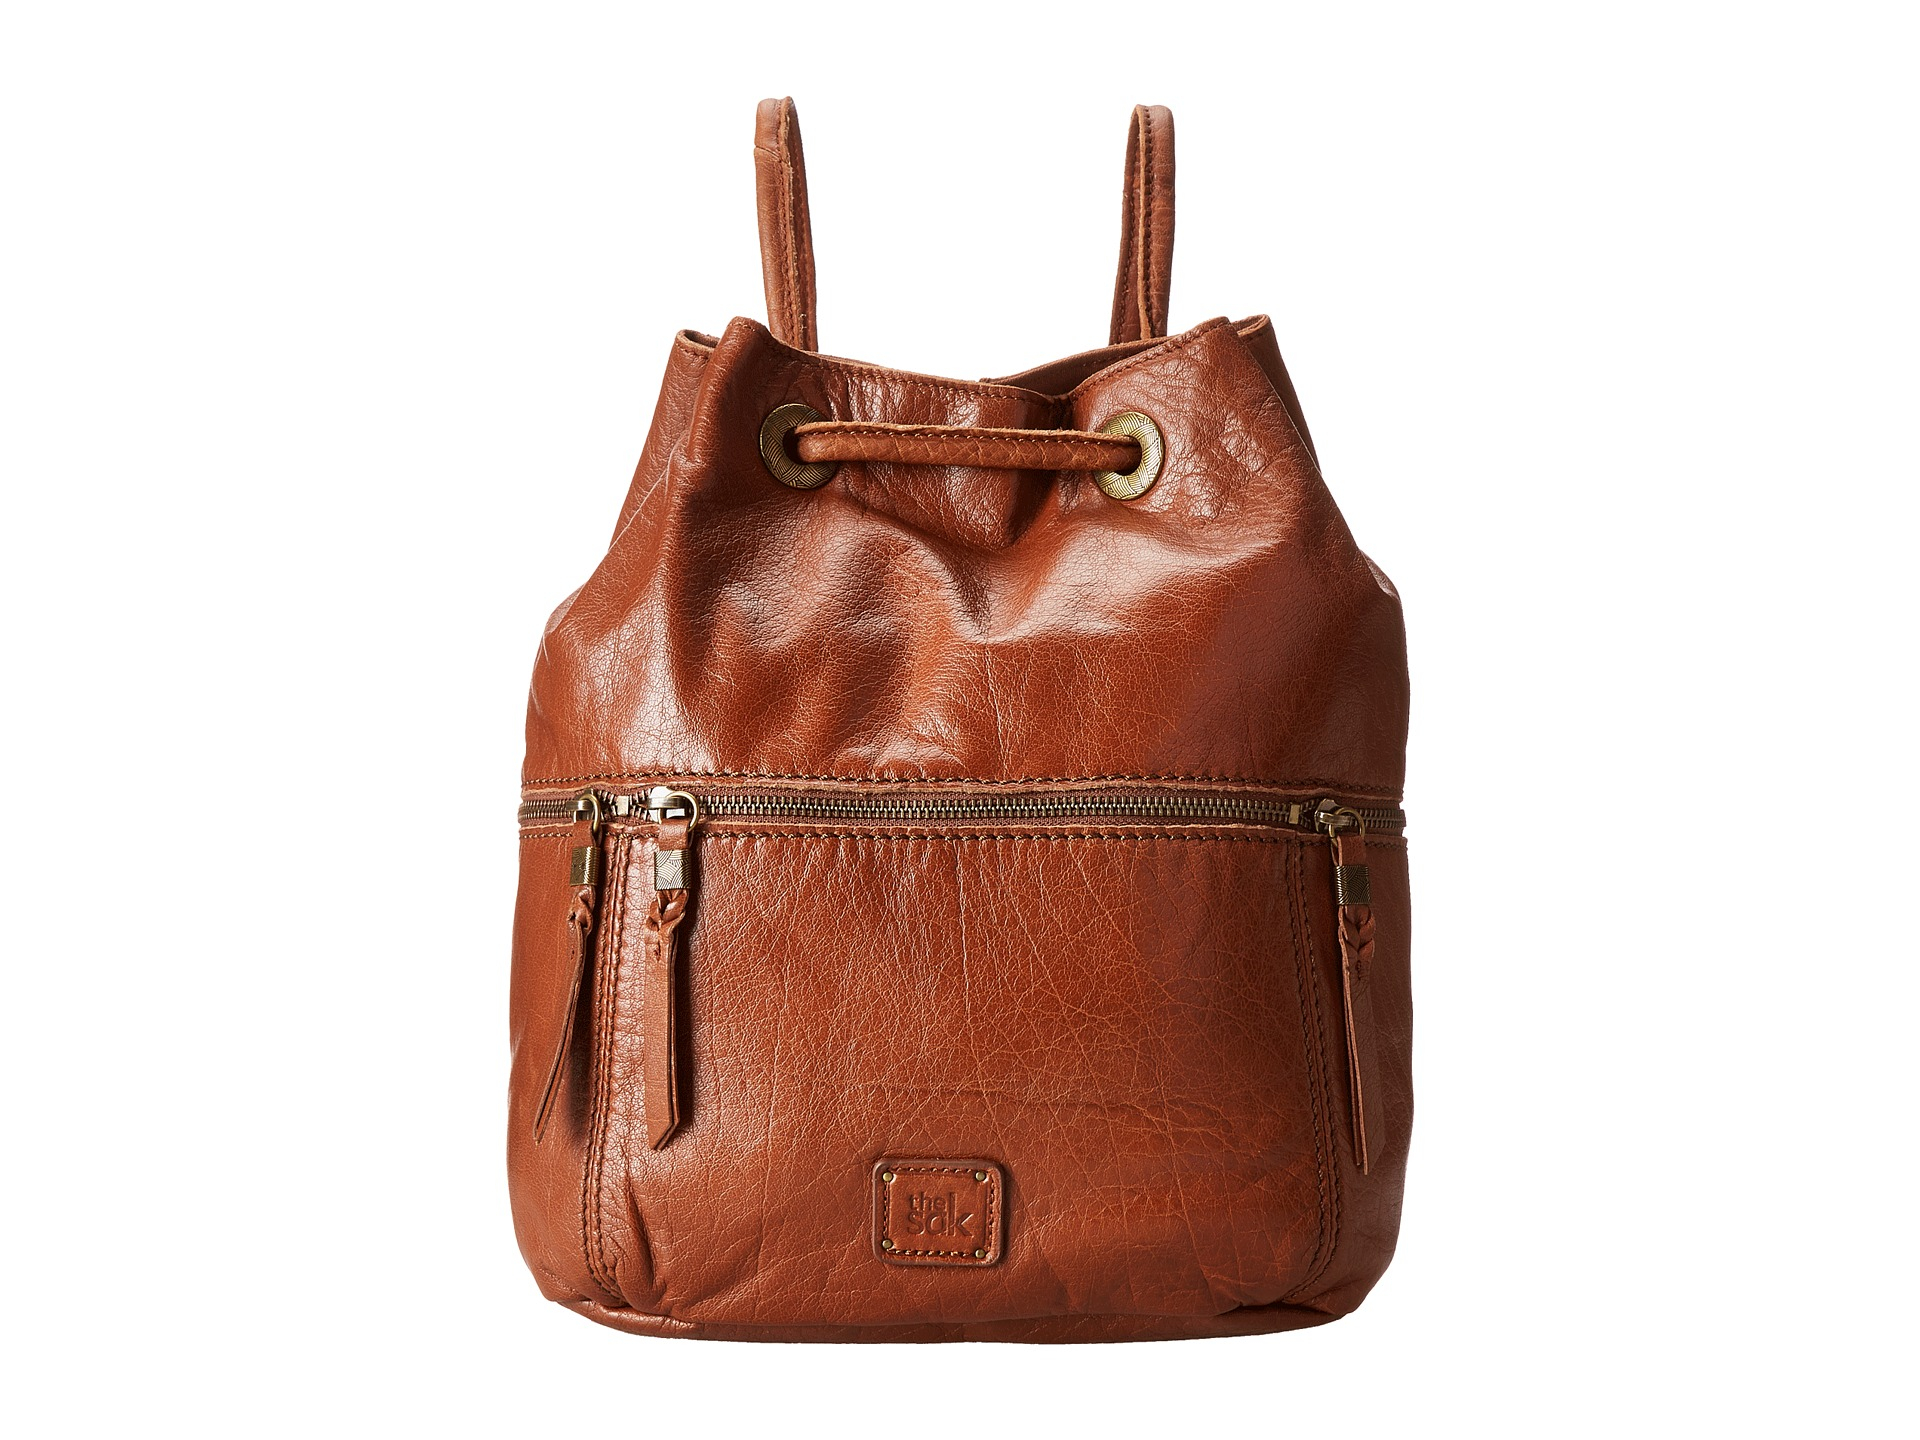 The Sak Leather Purse Backpack - Best Purse Image Ccdbb.Org a09b40a903e02